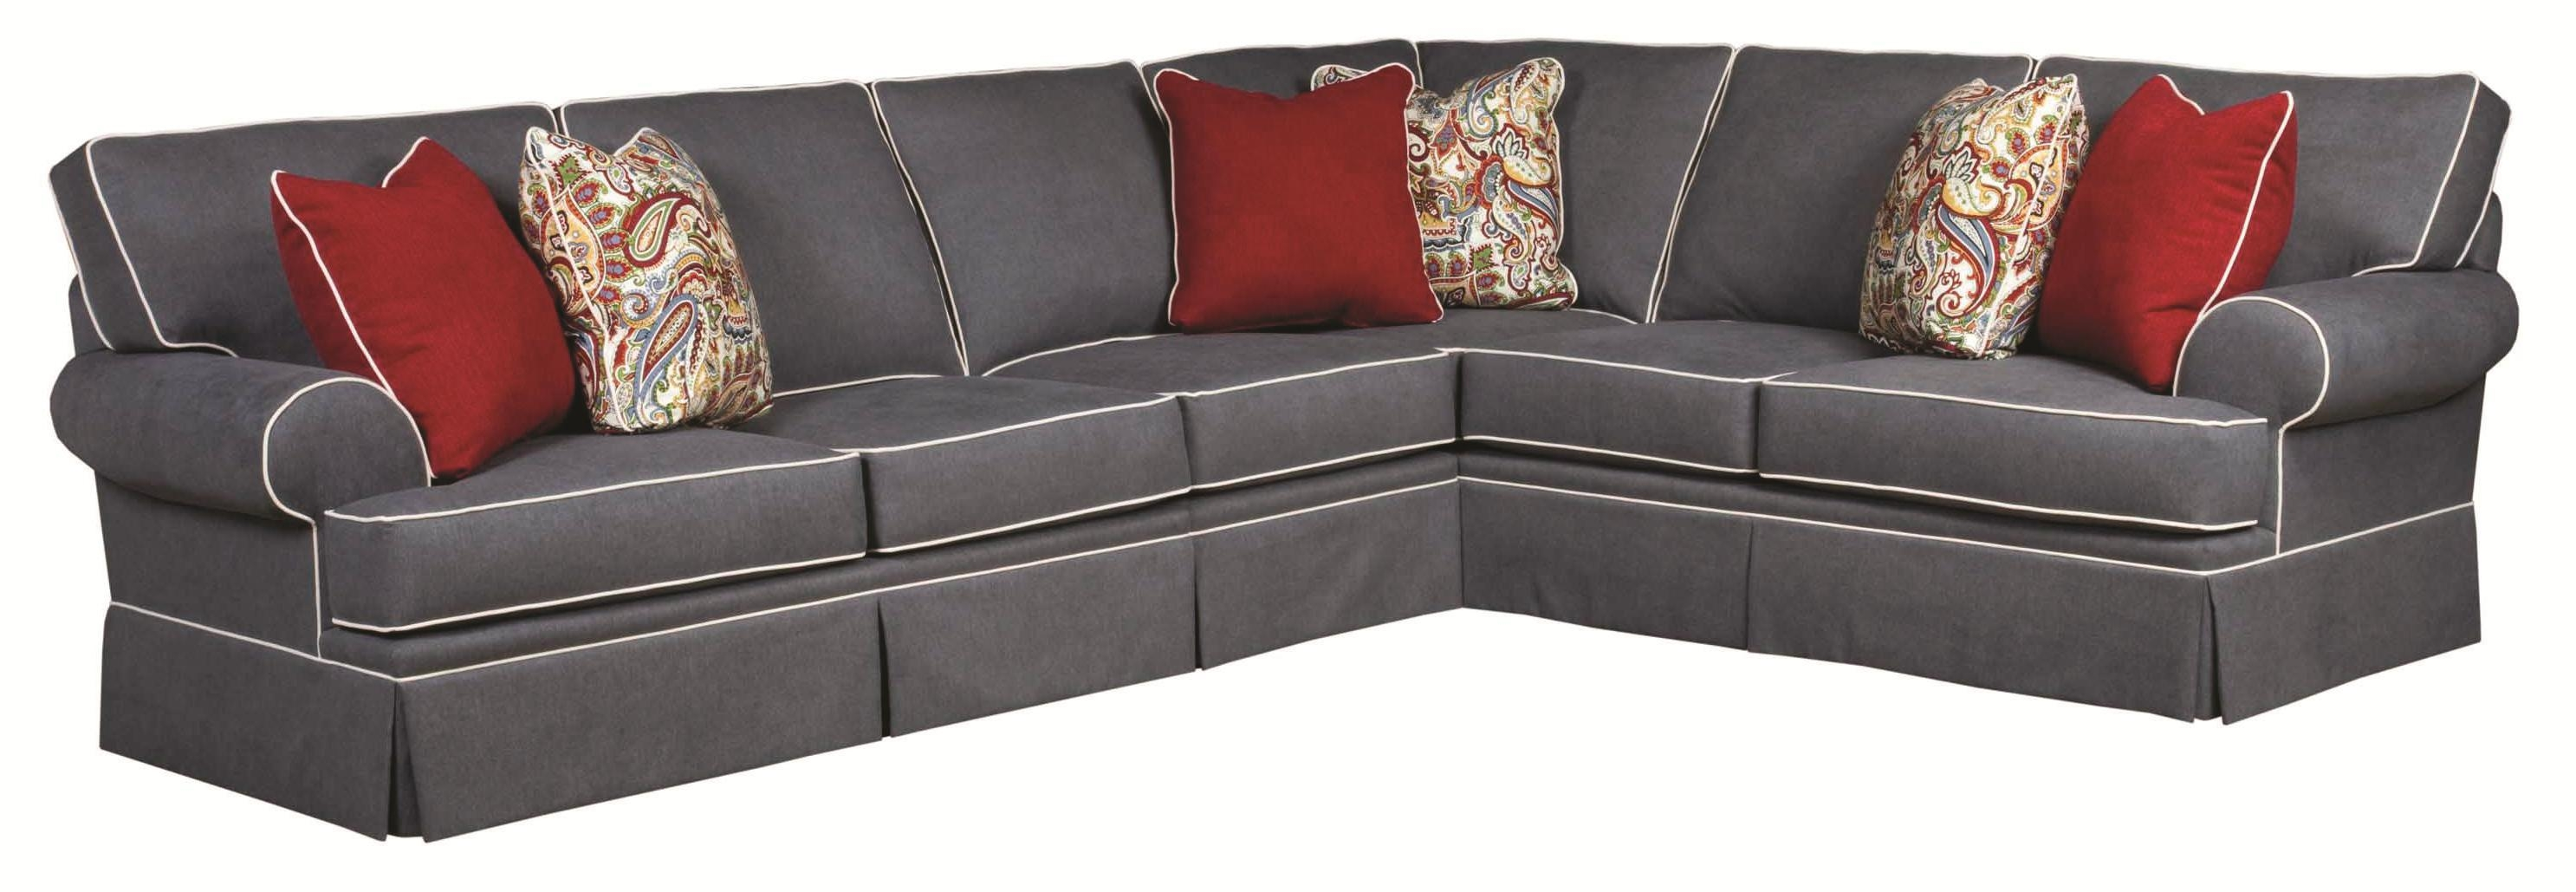 Broyhill Furniture Emily Traditional 3 Piece Sectional Sofa With Intended For Broyhill Reclining Sofas (Image 1 of 20)